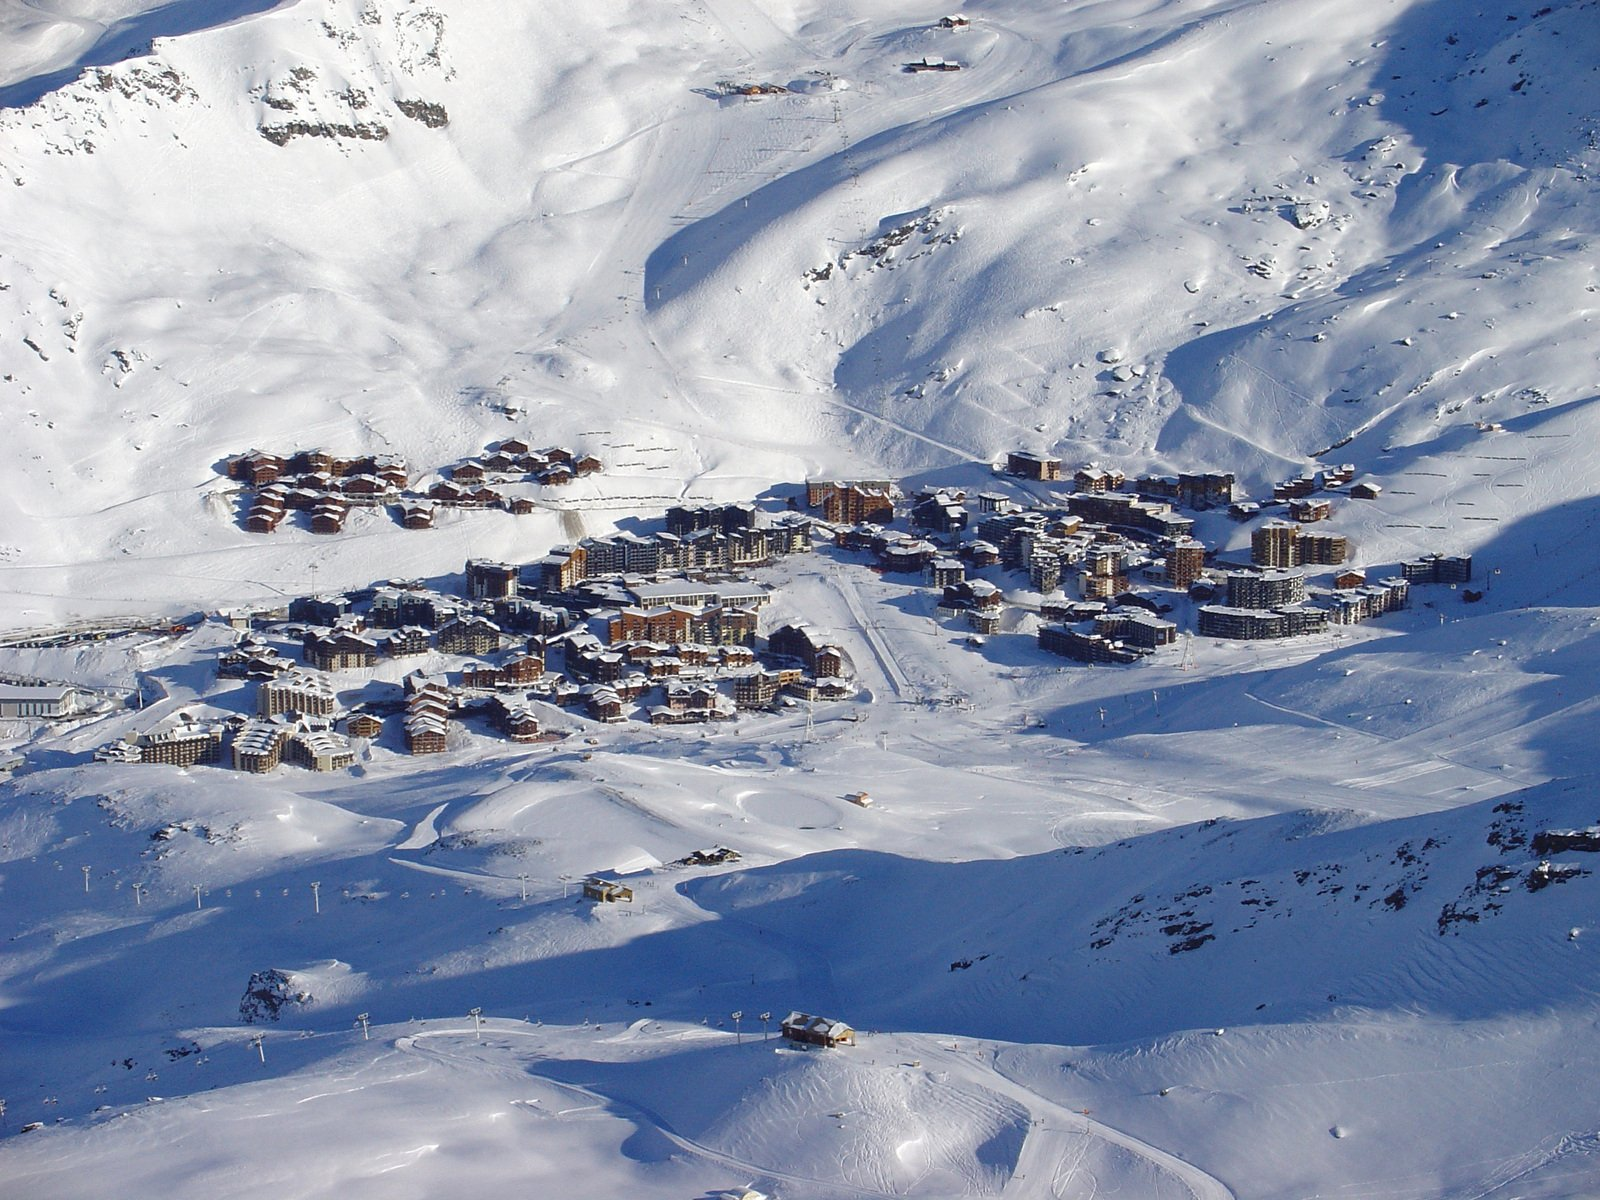 Free Val Thorens (France) Stock Photo - FreeImages.com